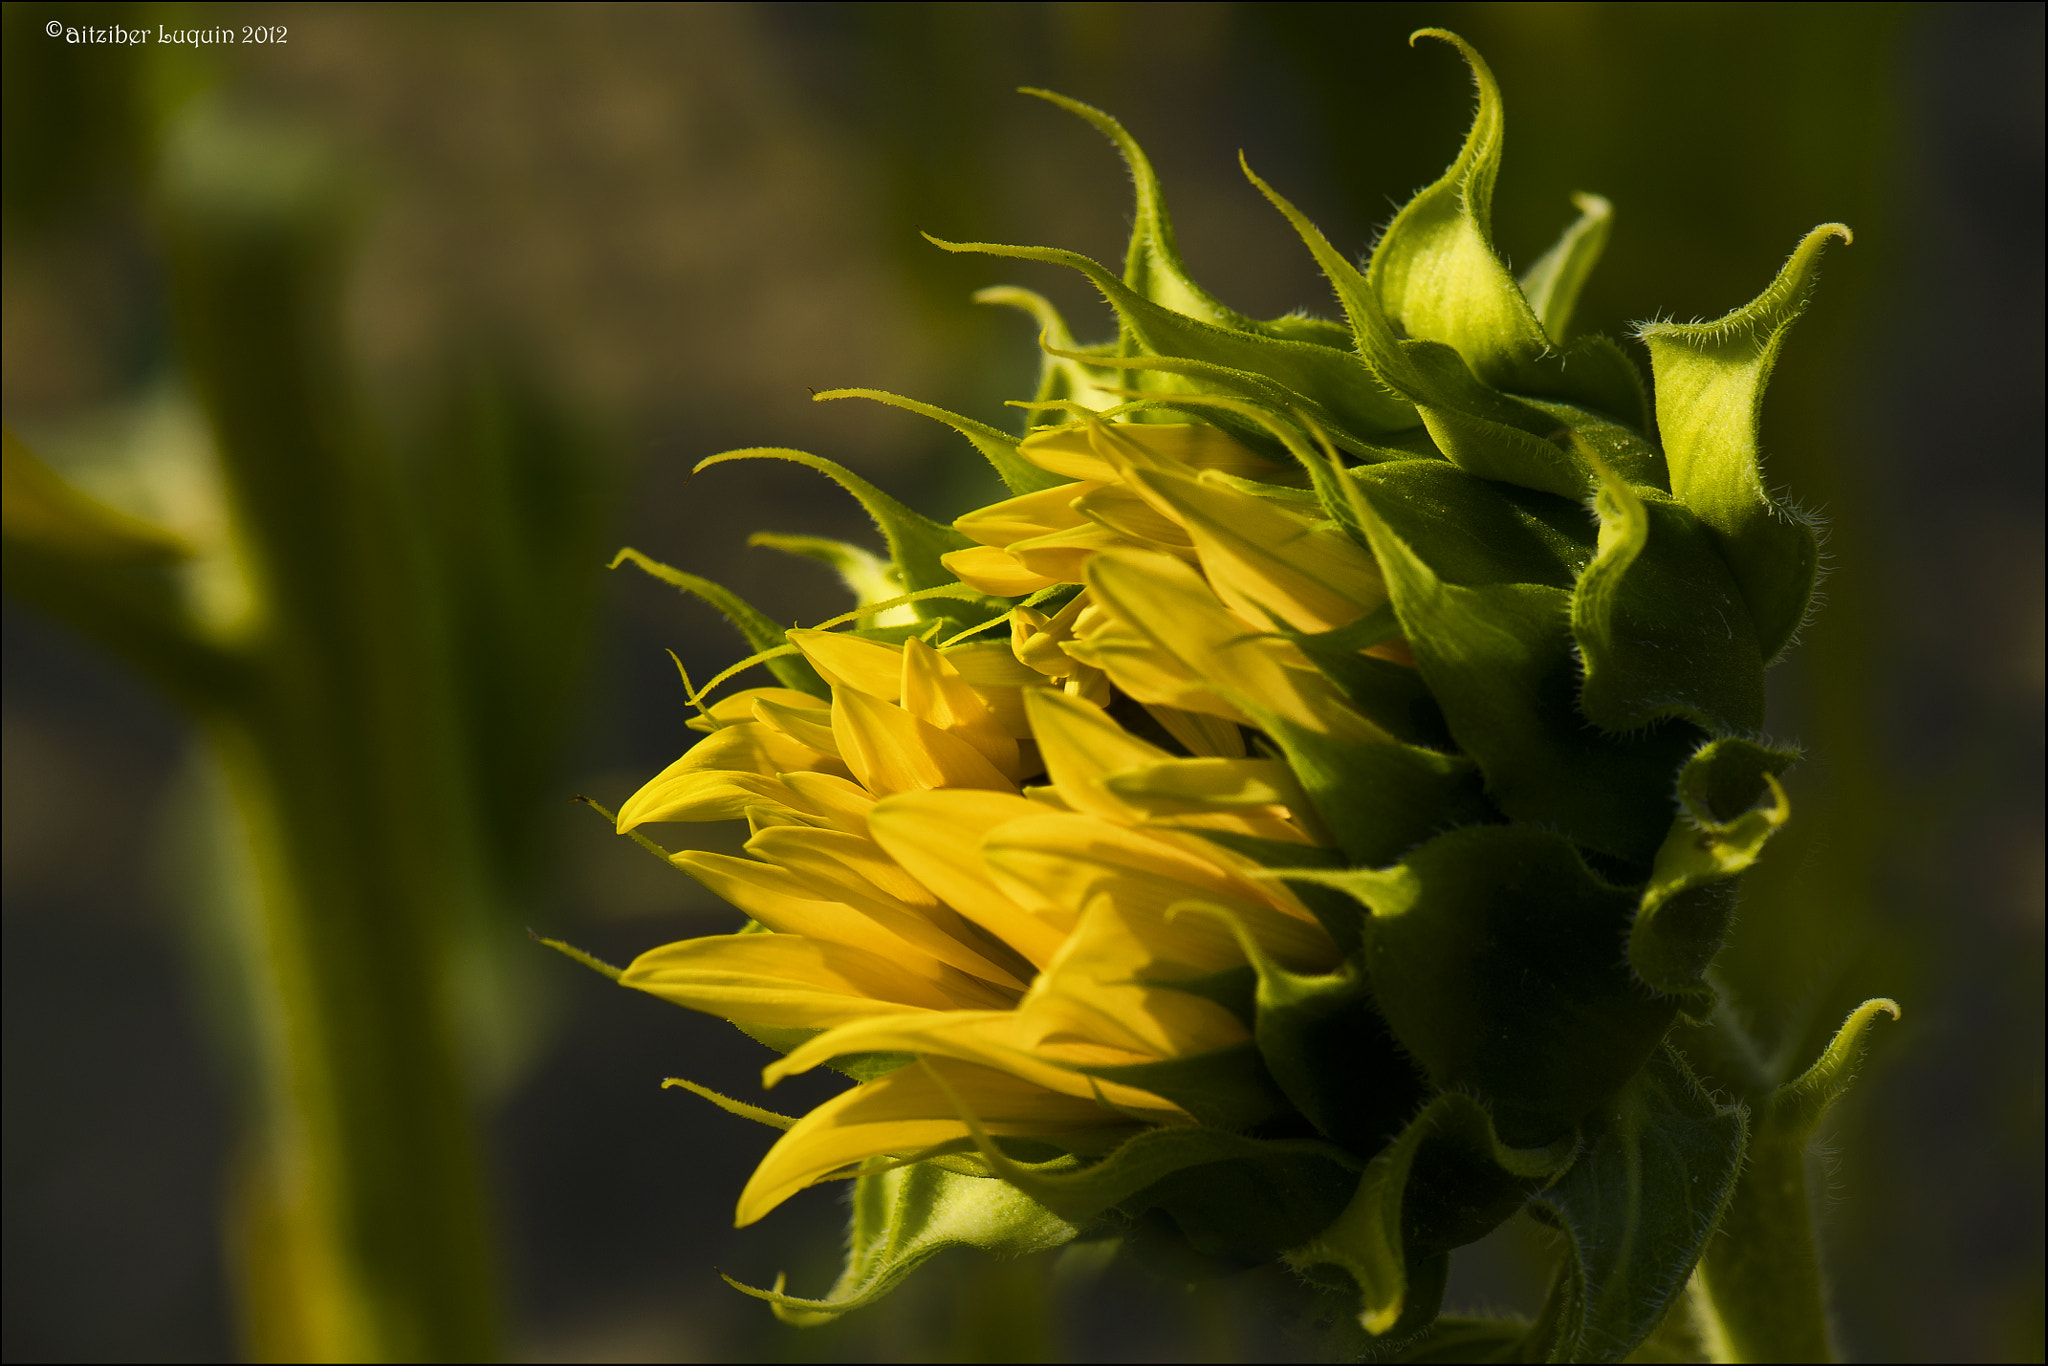 Photograph sunflower 2 by Aitziber Luquin on 500px